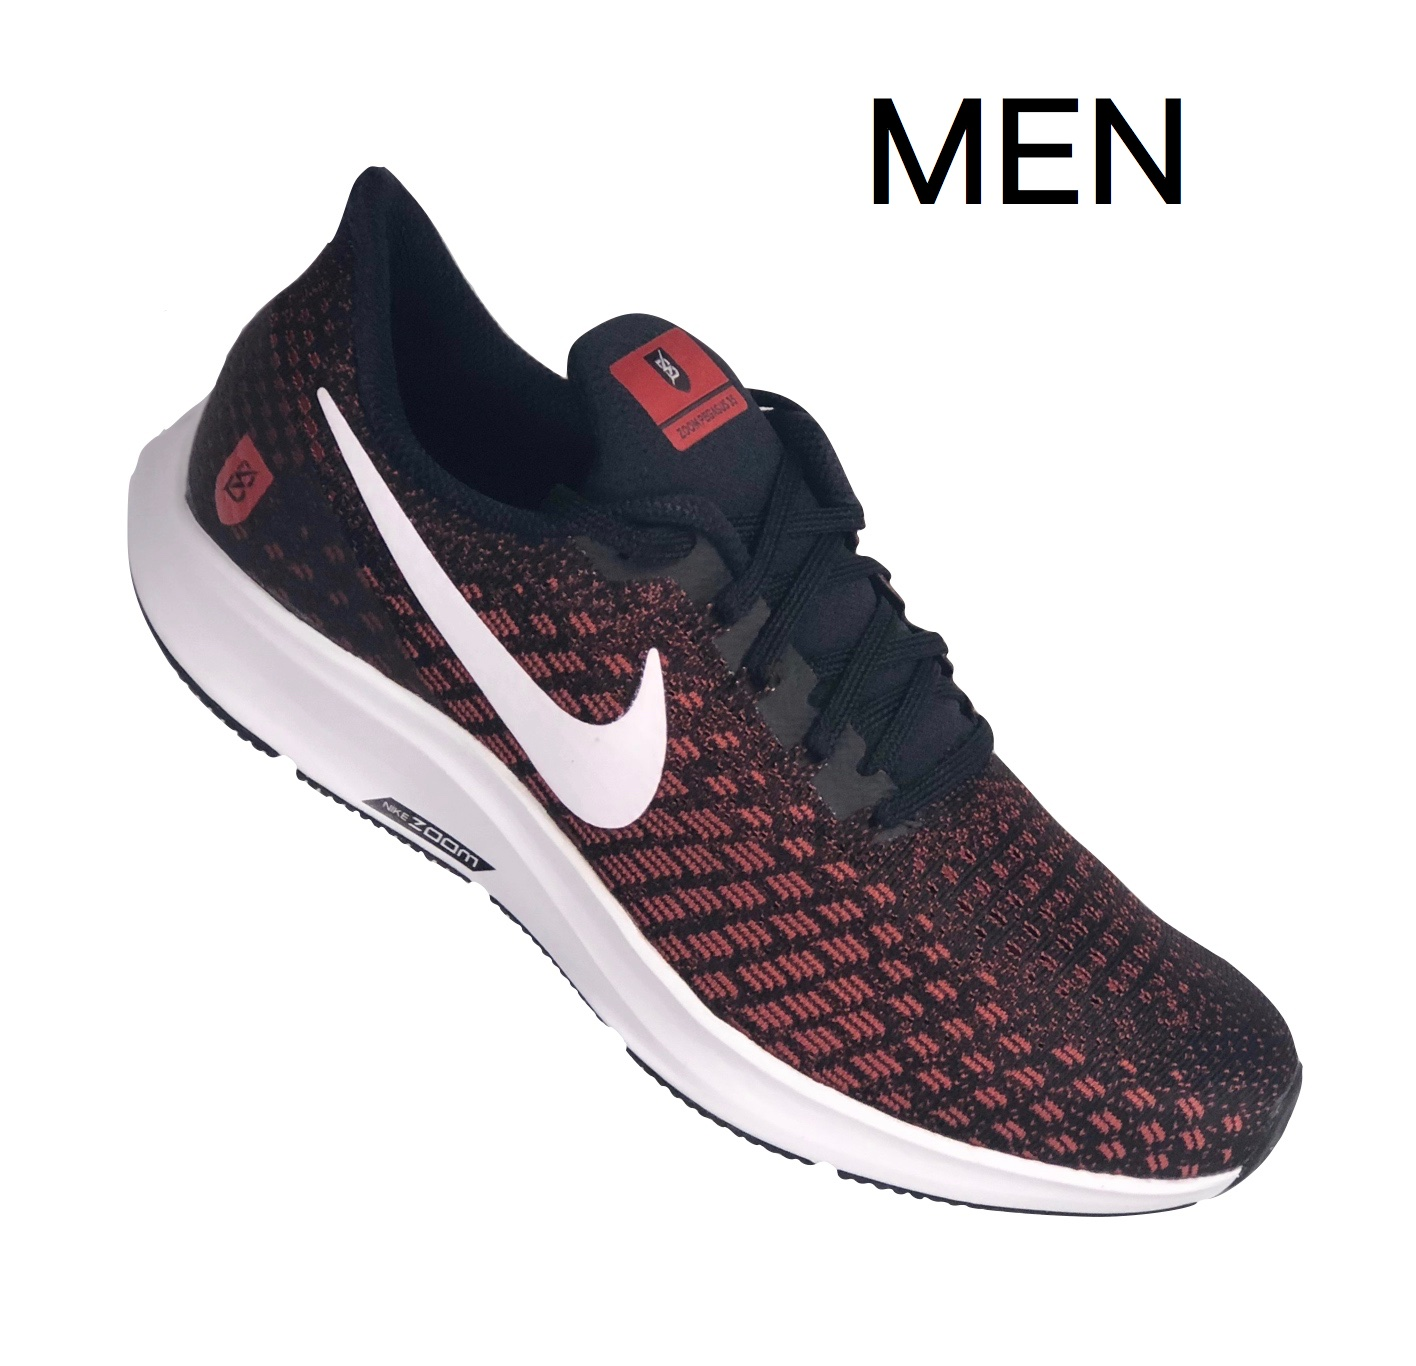 uk availability 0ec1c 4ac93 Mens Nike Air Zoom Pegasus 35 BTC. DSC08841.jpg. DSC07875.jpg. BTC FA18 Peg  - 1 - MEN 2.JPG